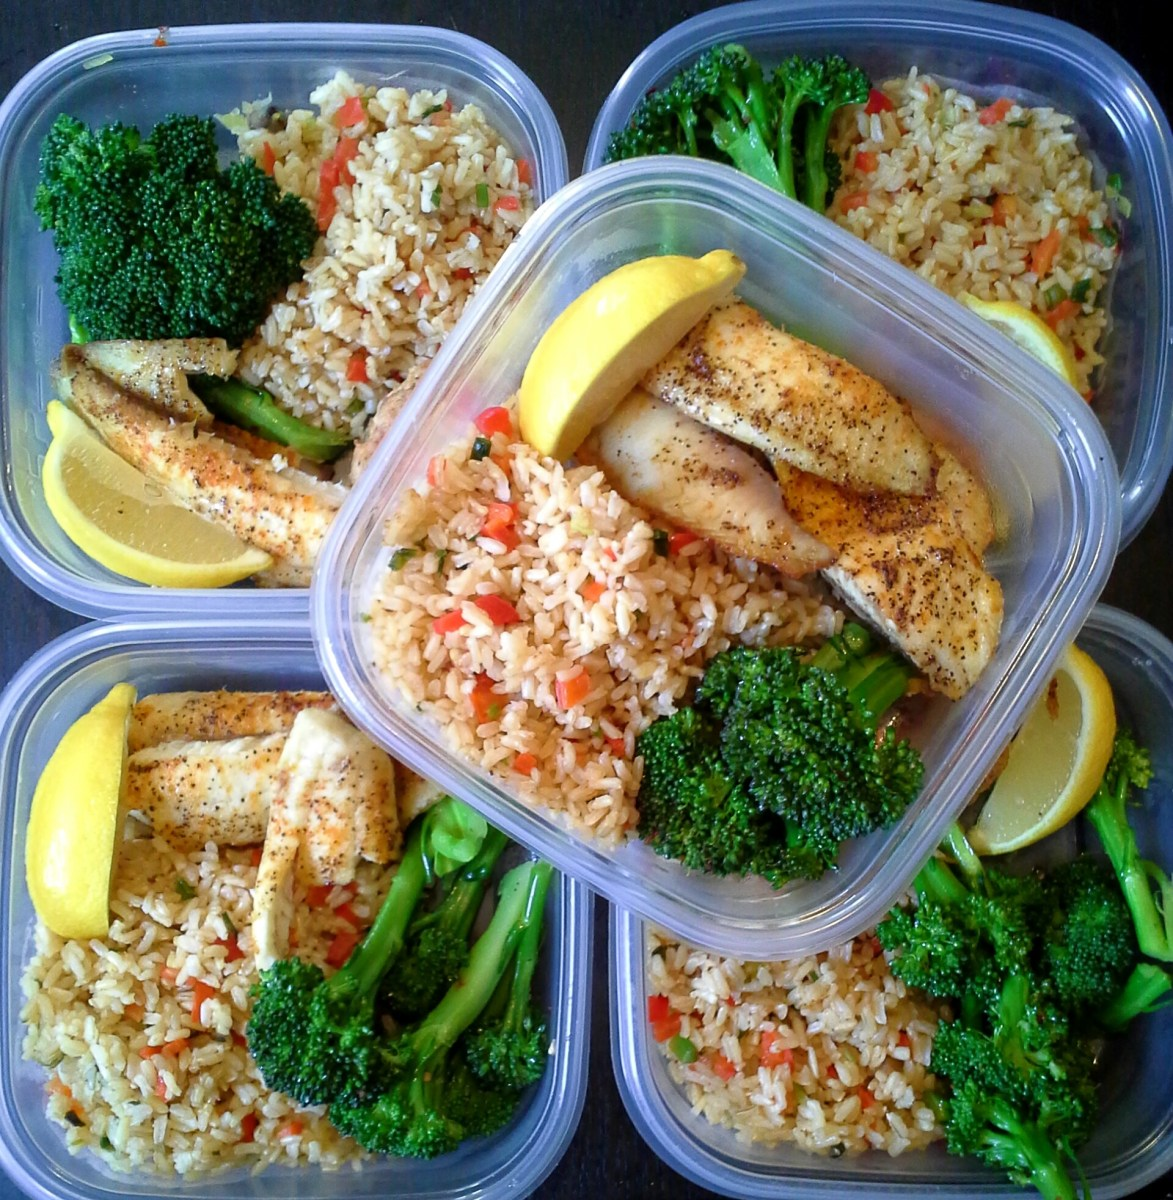 Meal Prep: Tilapia, Rice And Broccoli